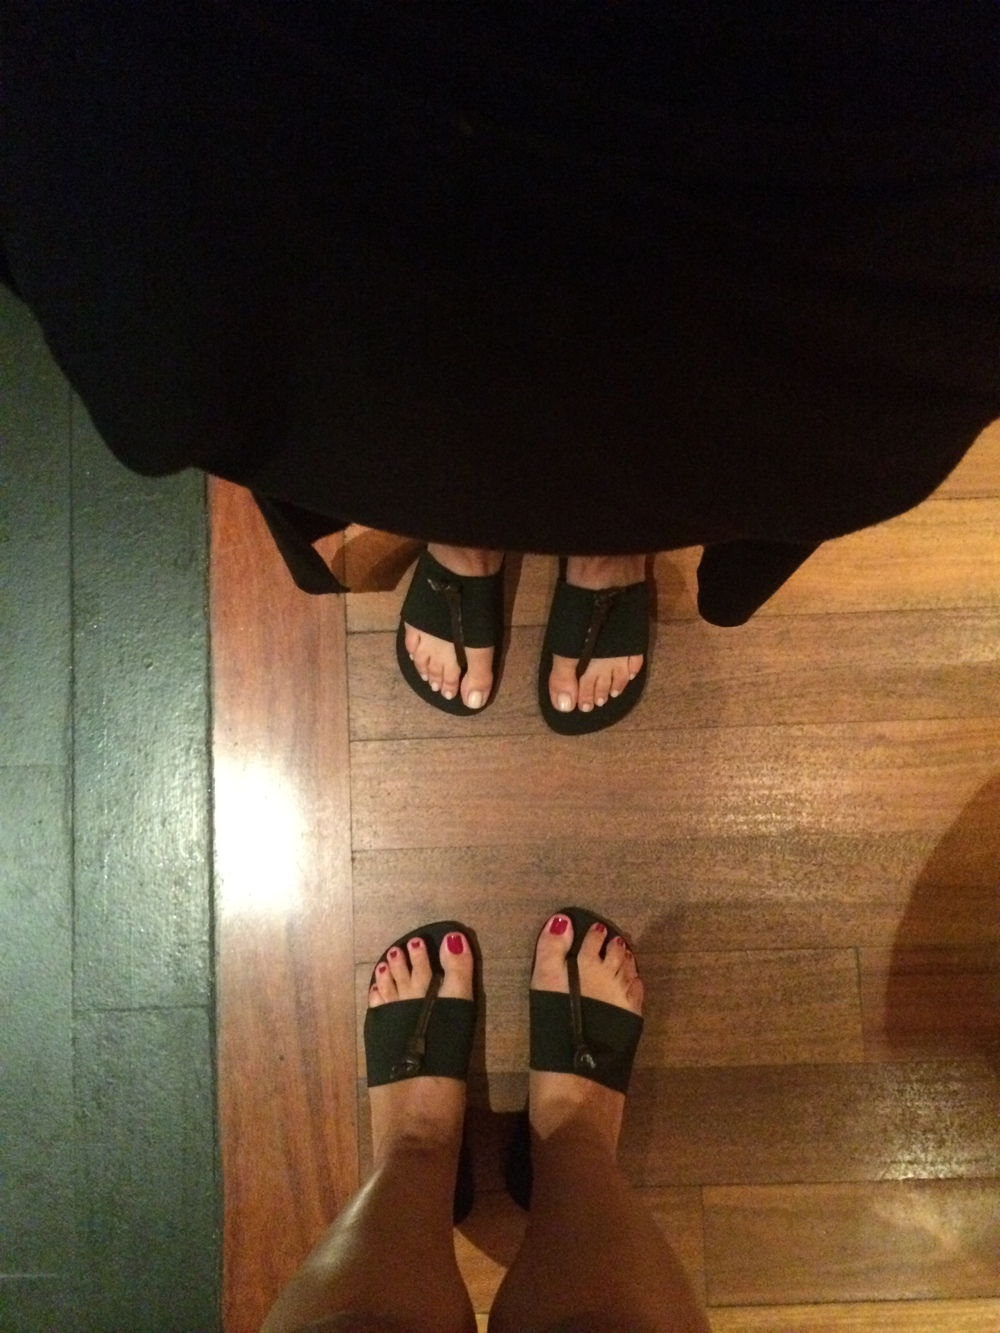 The sandals we got to keep. Too bad they were too big on Janine's tiny feet.